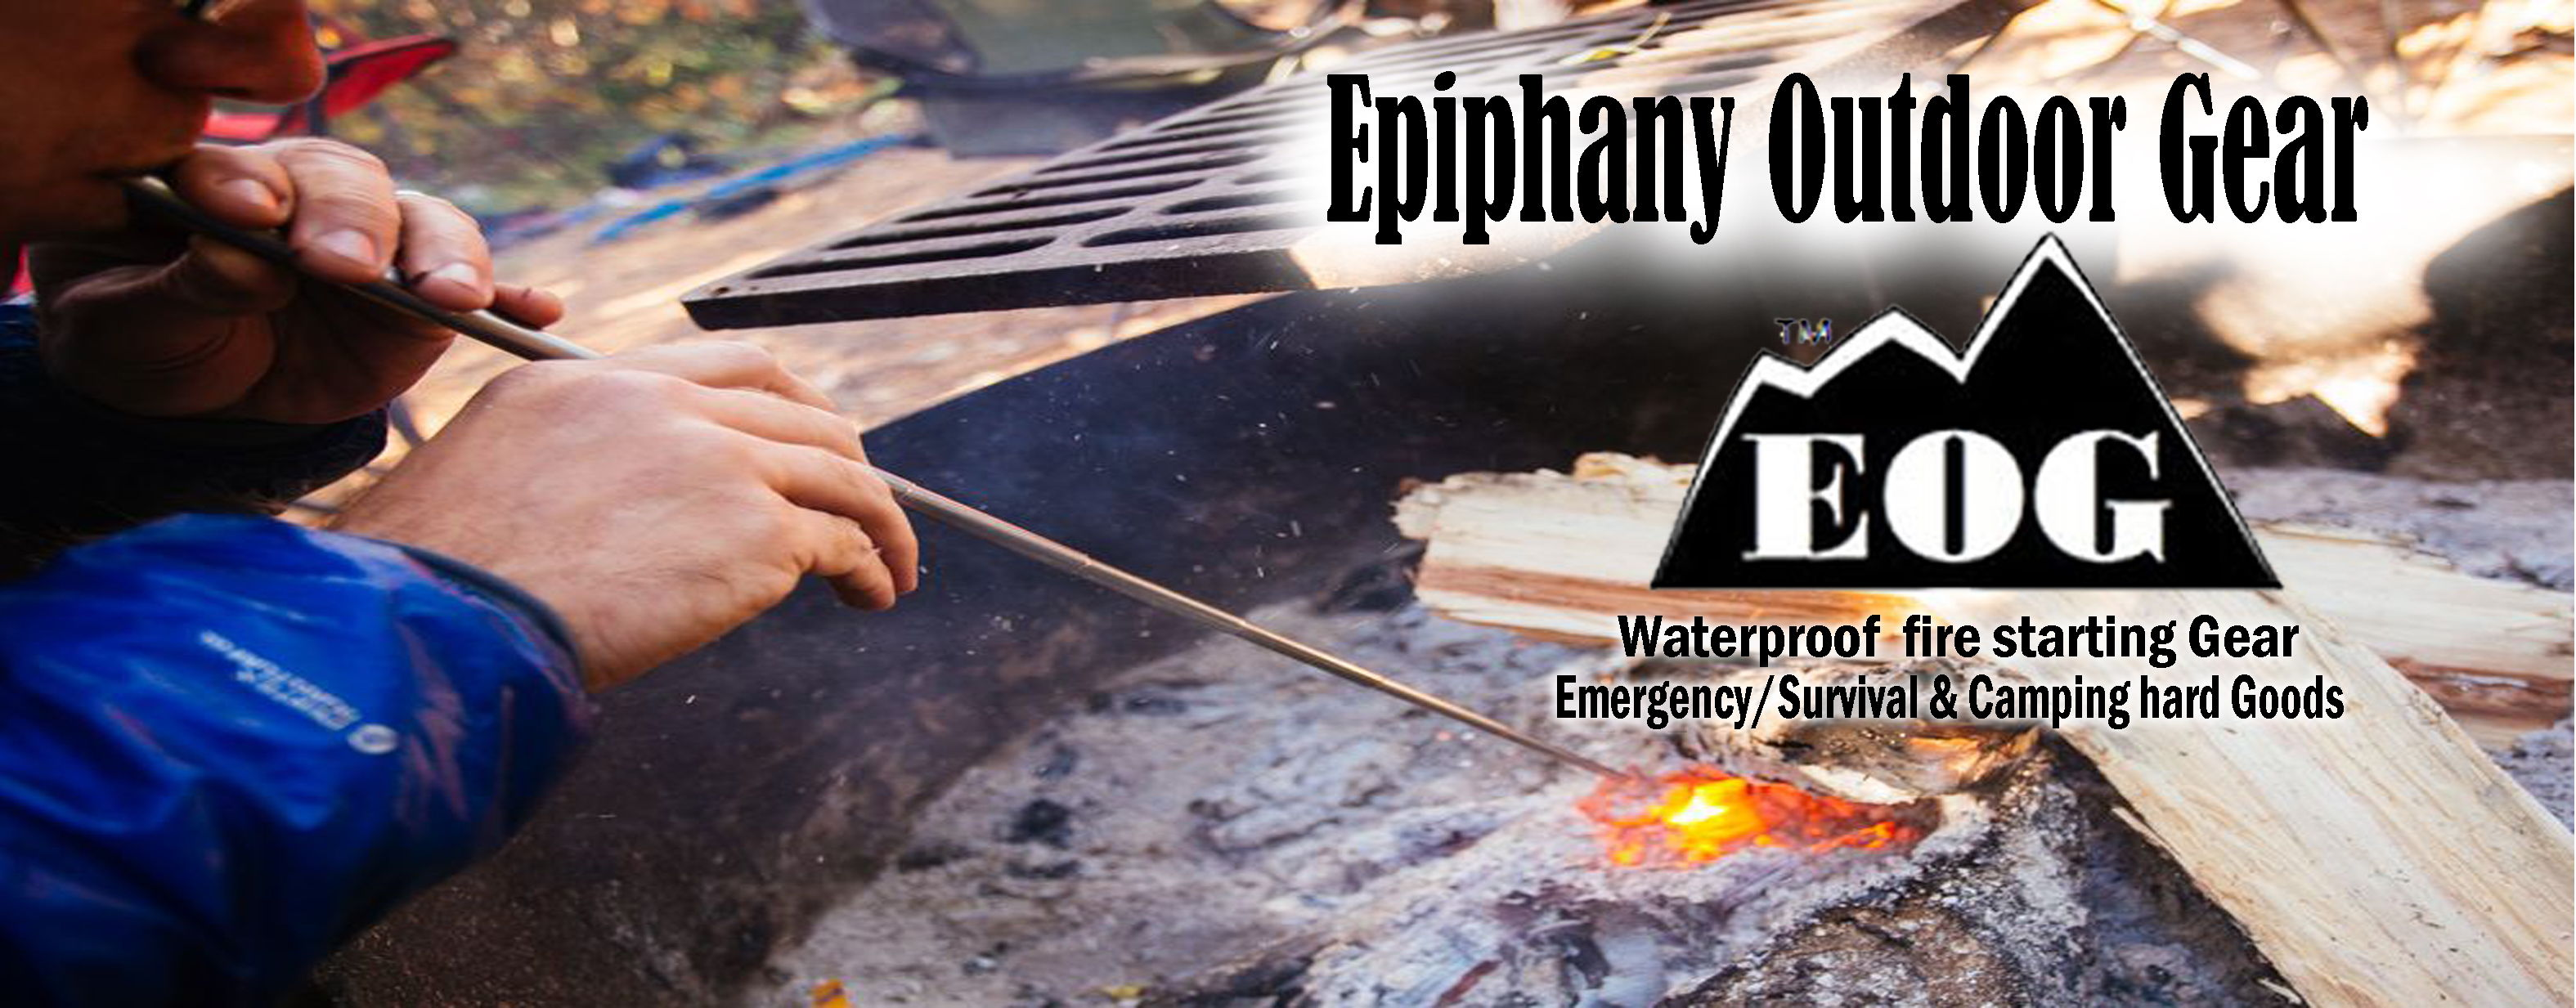 Epiphany Outdoor Gear